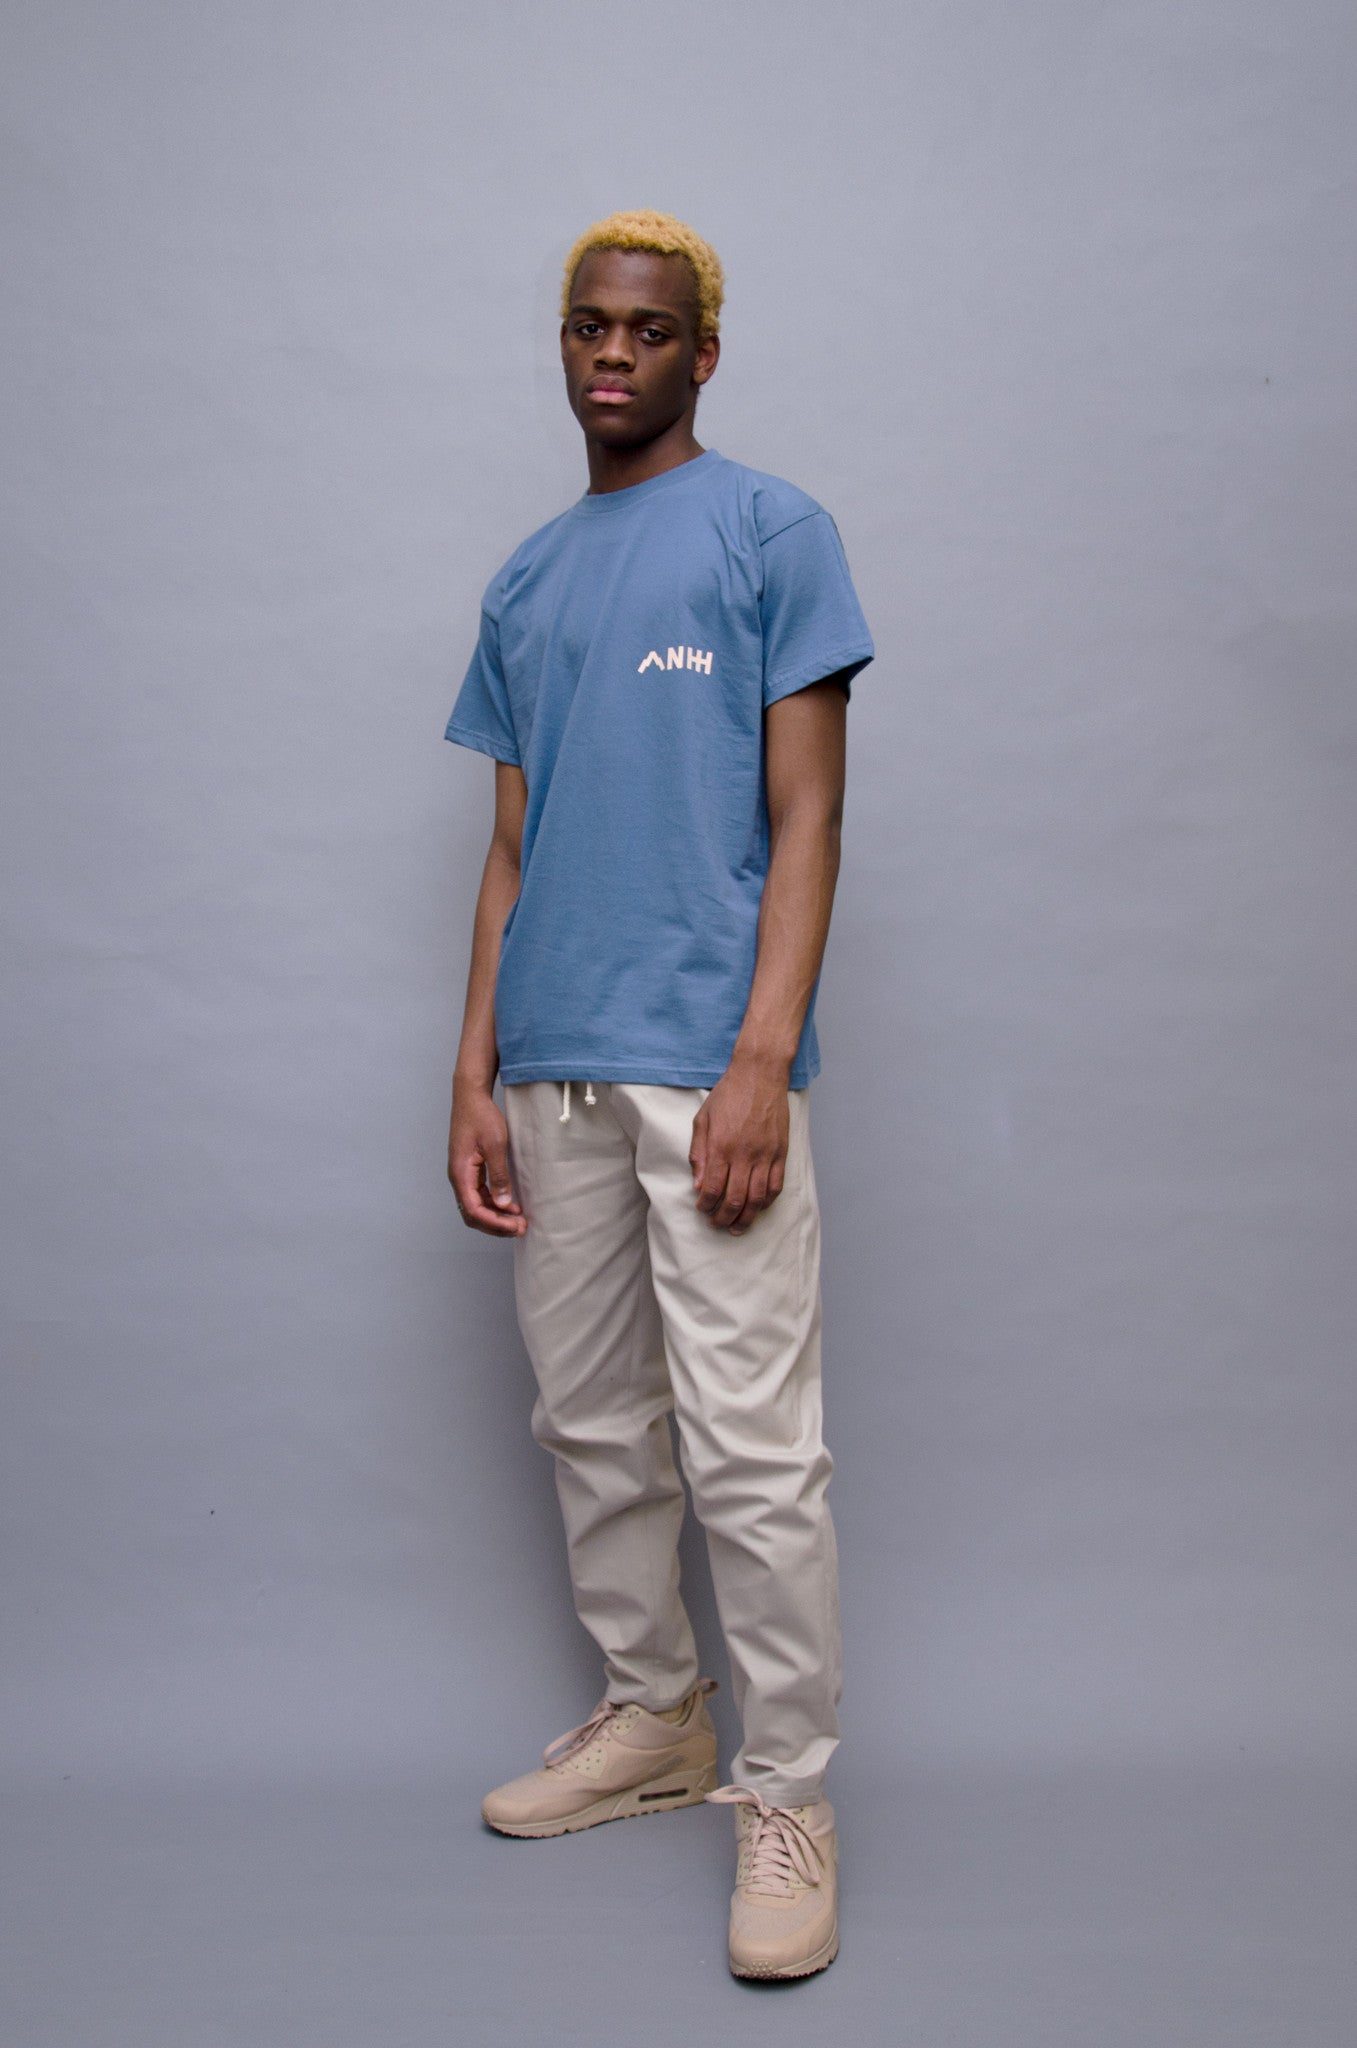 The North Hill Revolte Tee is a made in France t-shirt